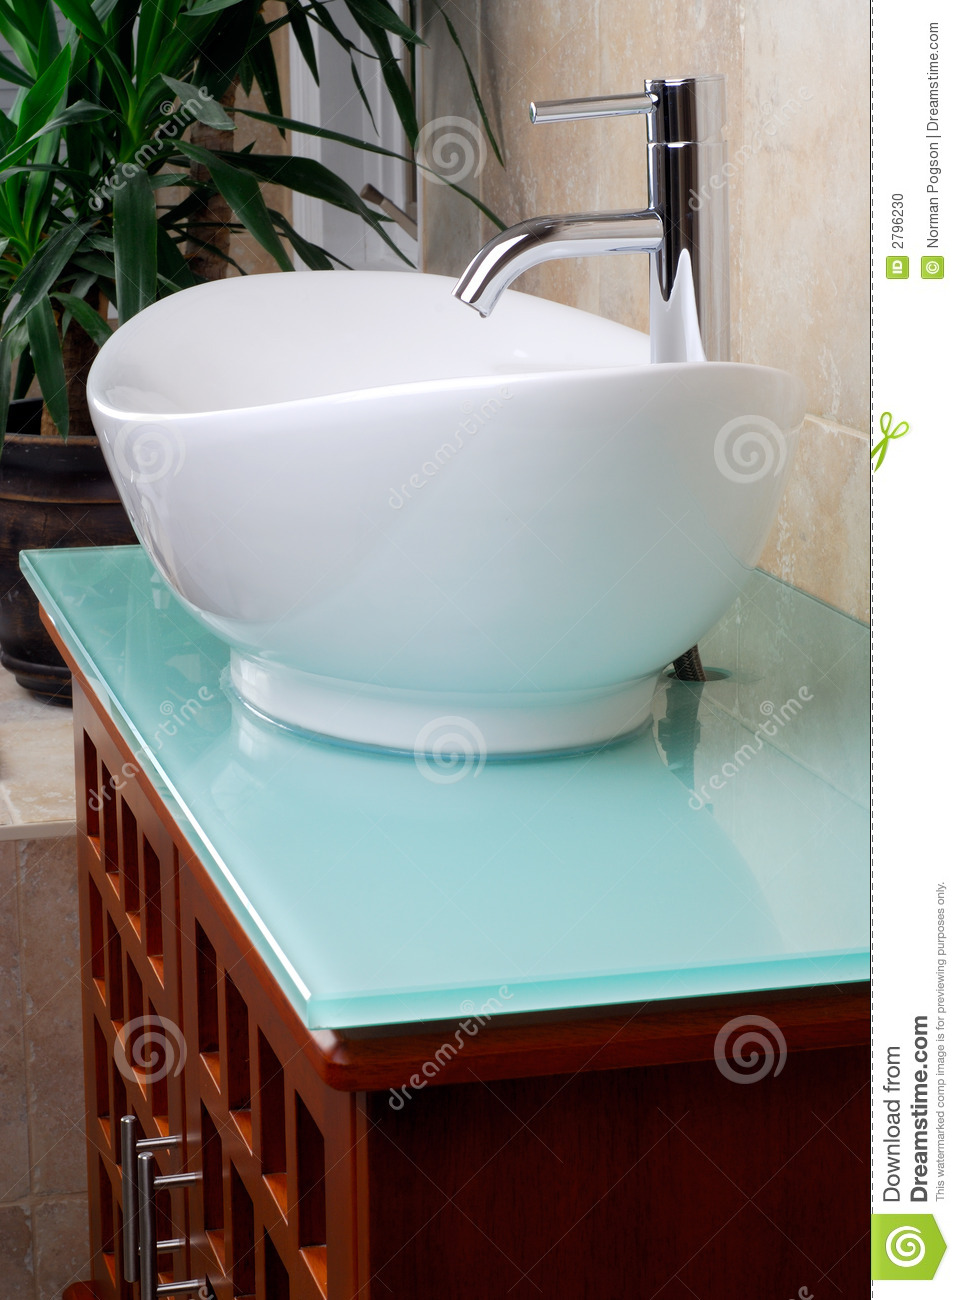 Modern Bathroom Vanity Sink Stock Photo Image Of